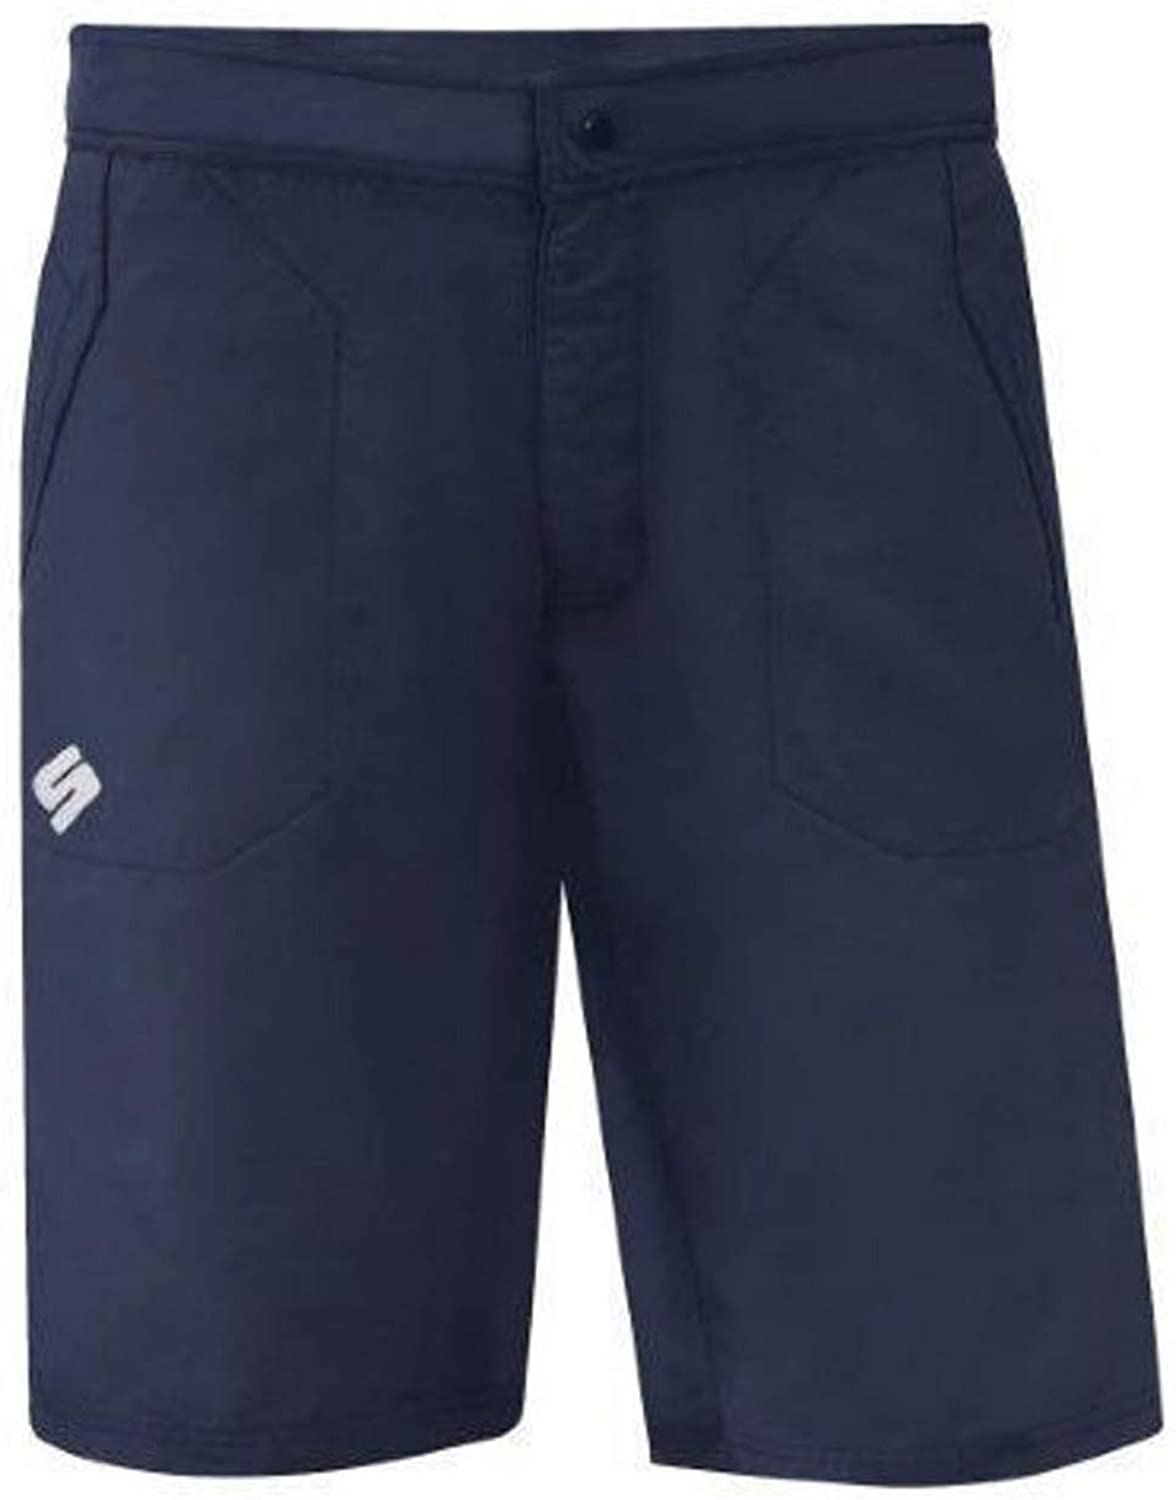 Sea-Doo Ripstop Boardshort Men Image